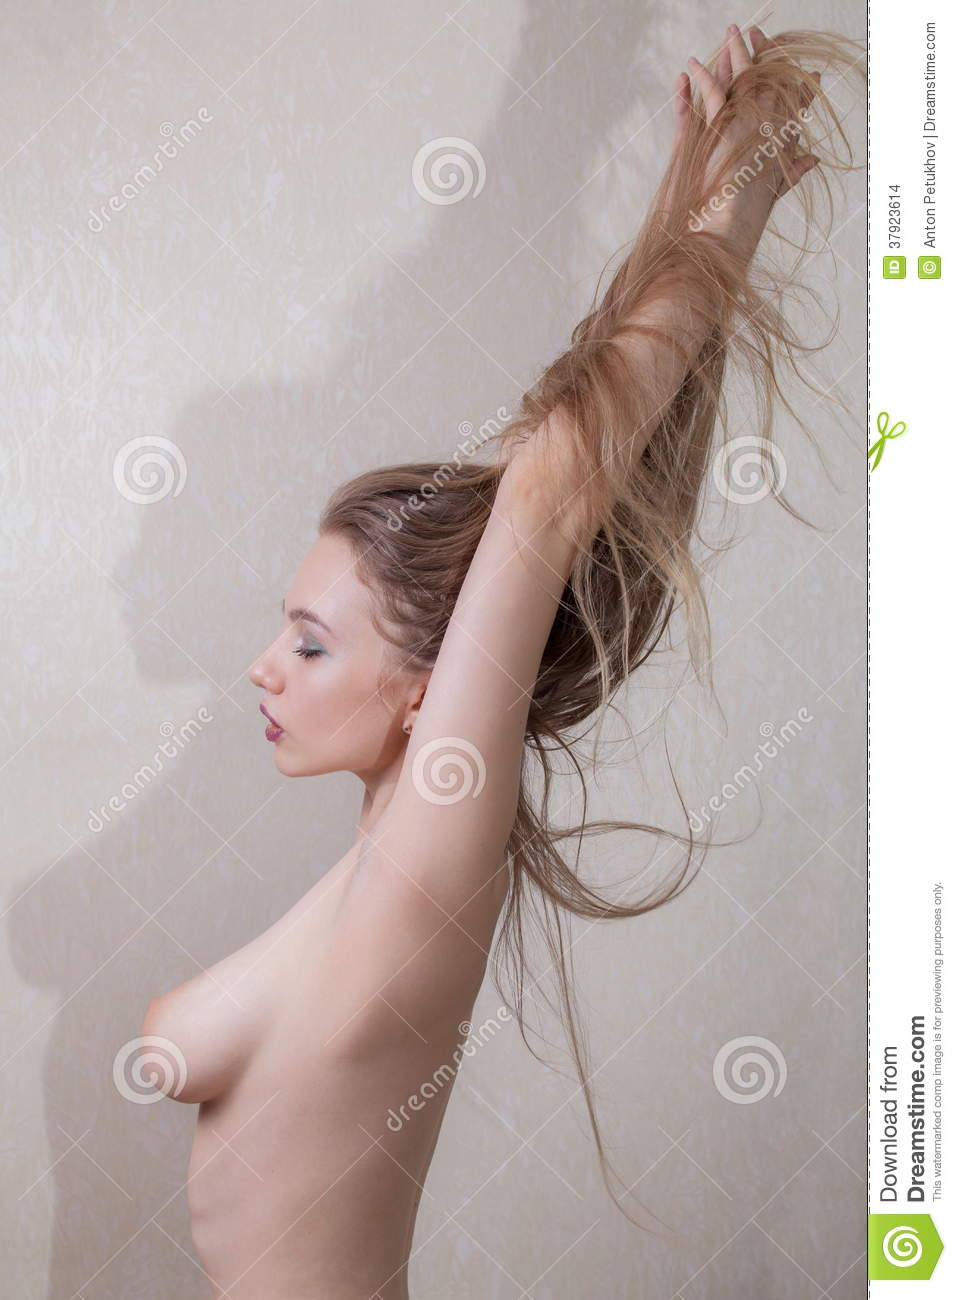 Women Exercising In The Nude 31